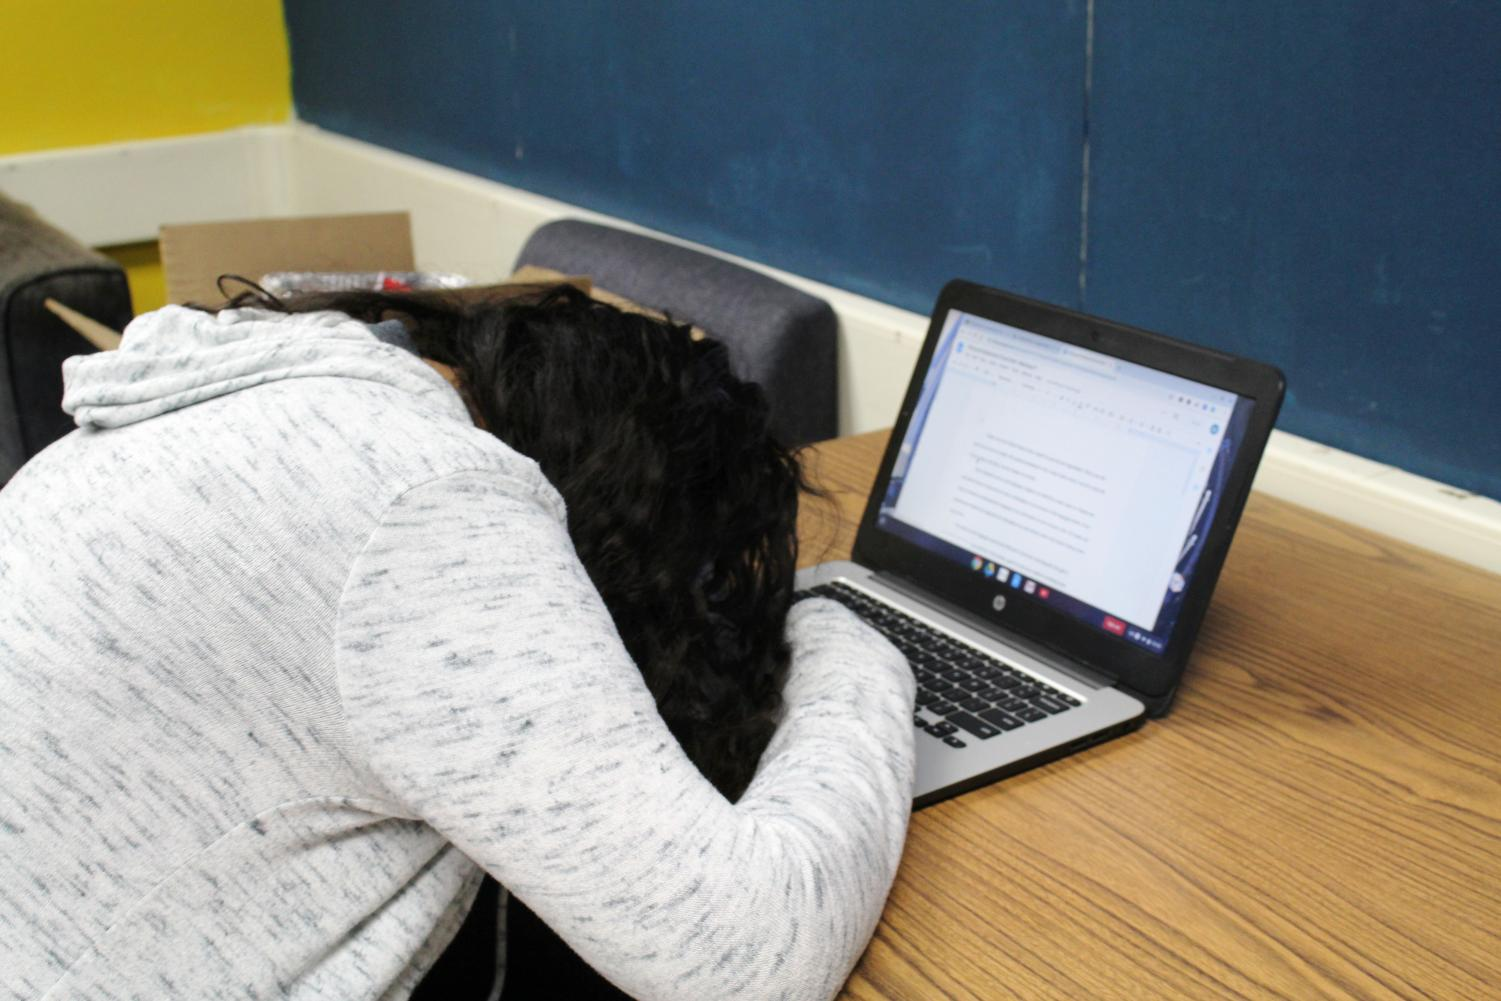 Some students don't take their responsibility seriously when it comes to managing their time with Chromebooks.